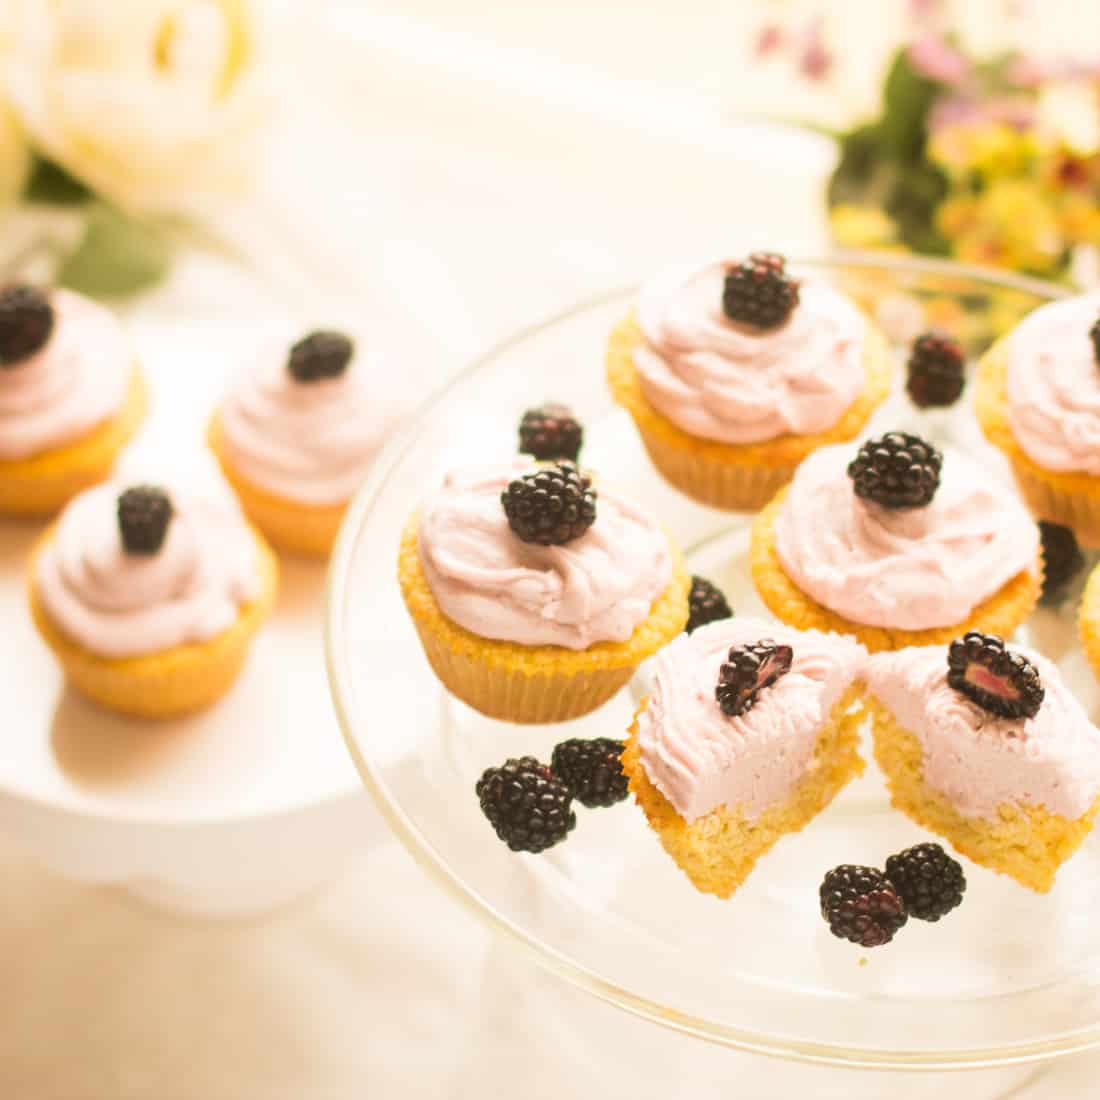 Sugar Free Blackberry Lemonade Cupcakes